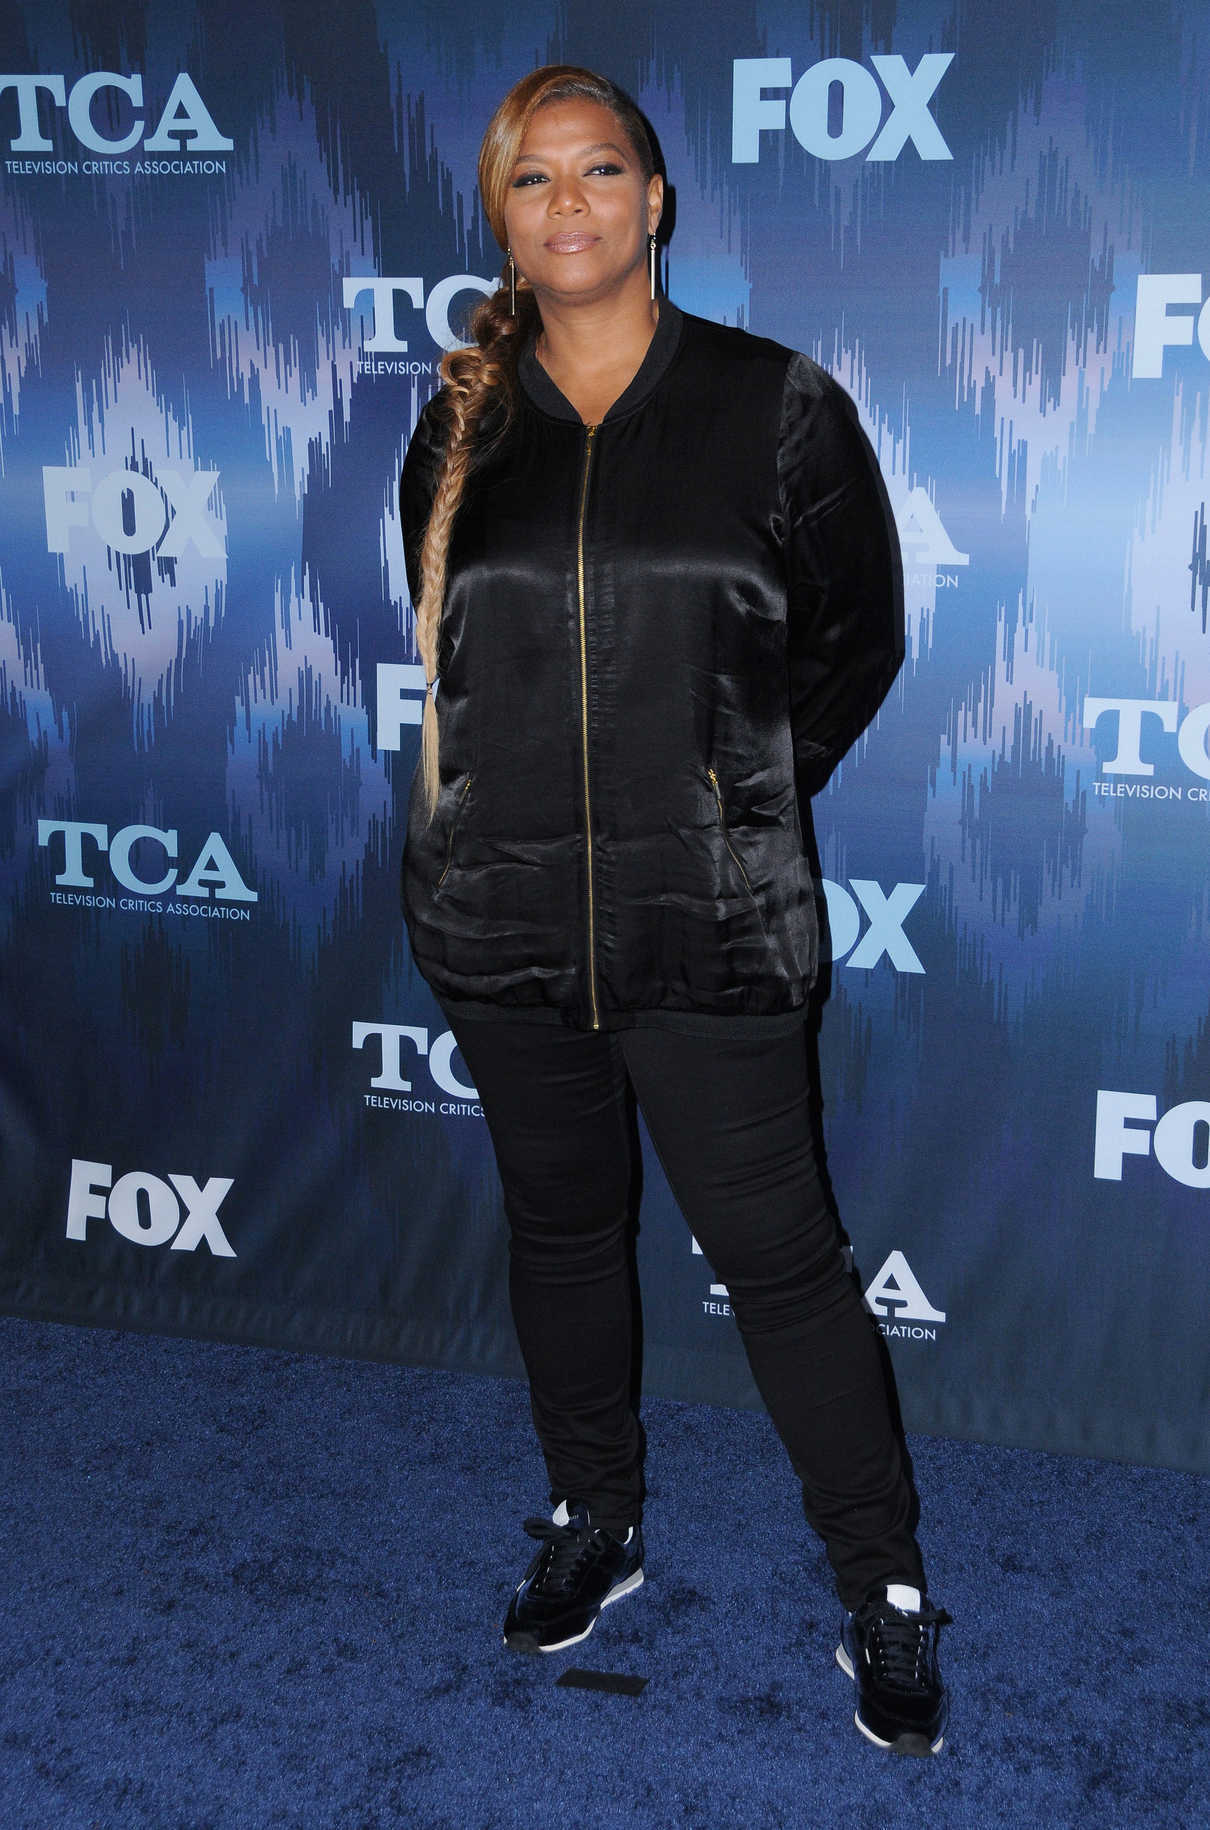 Queen Latifah at the FOX All-Star Party During the 2017 Winter TCA Tour in Pasadena 01/11/2017-2